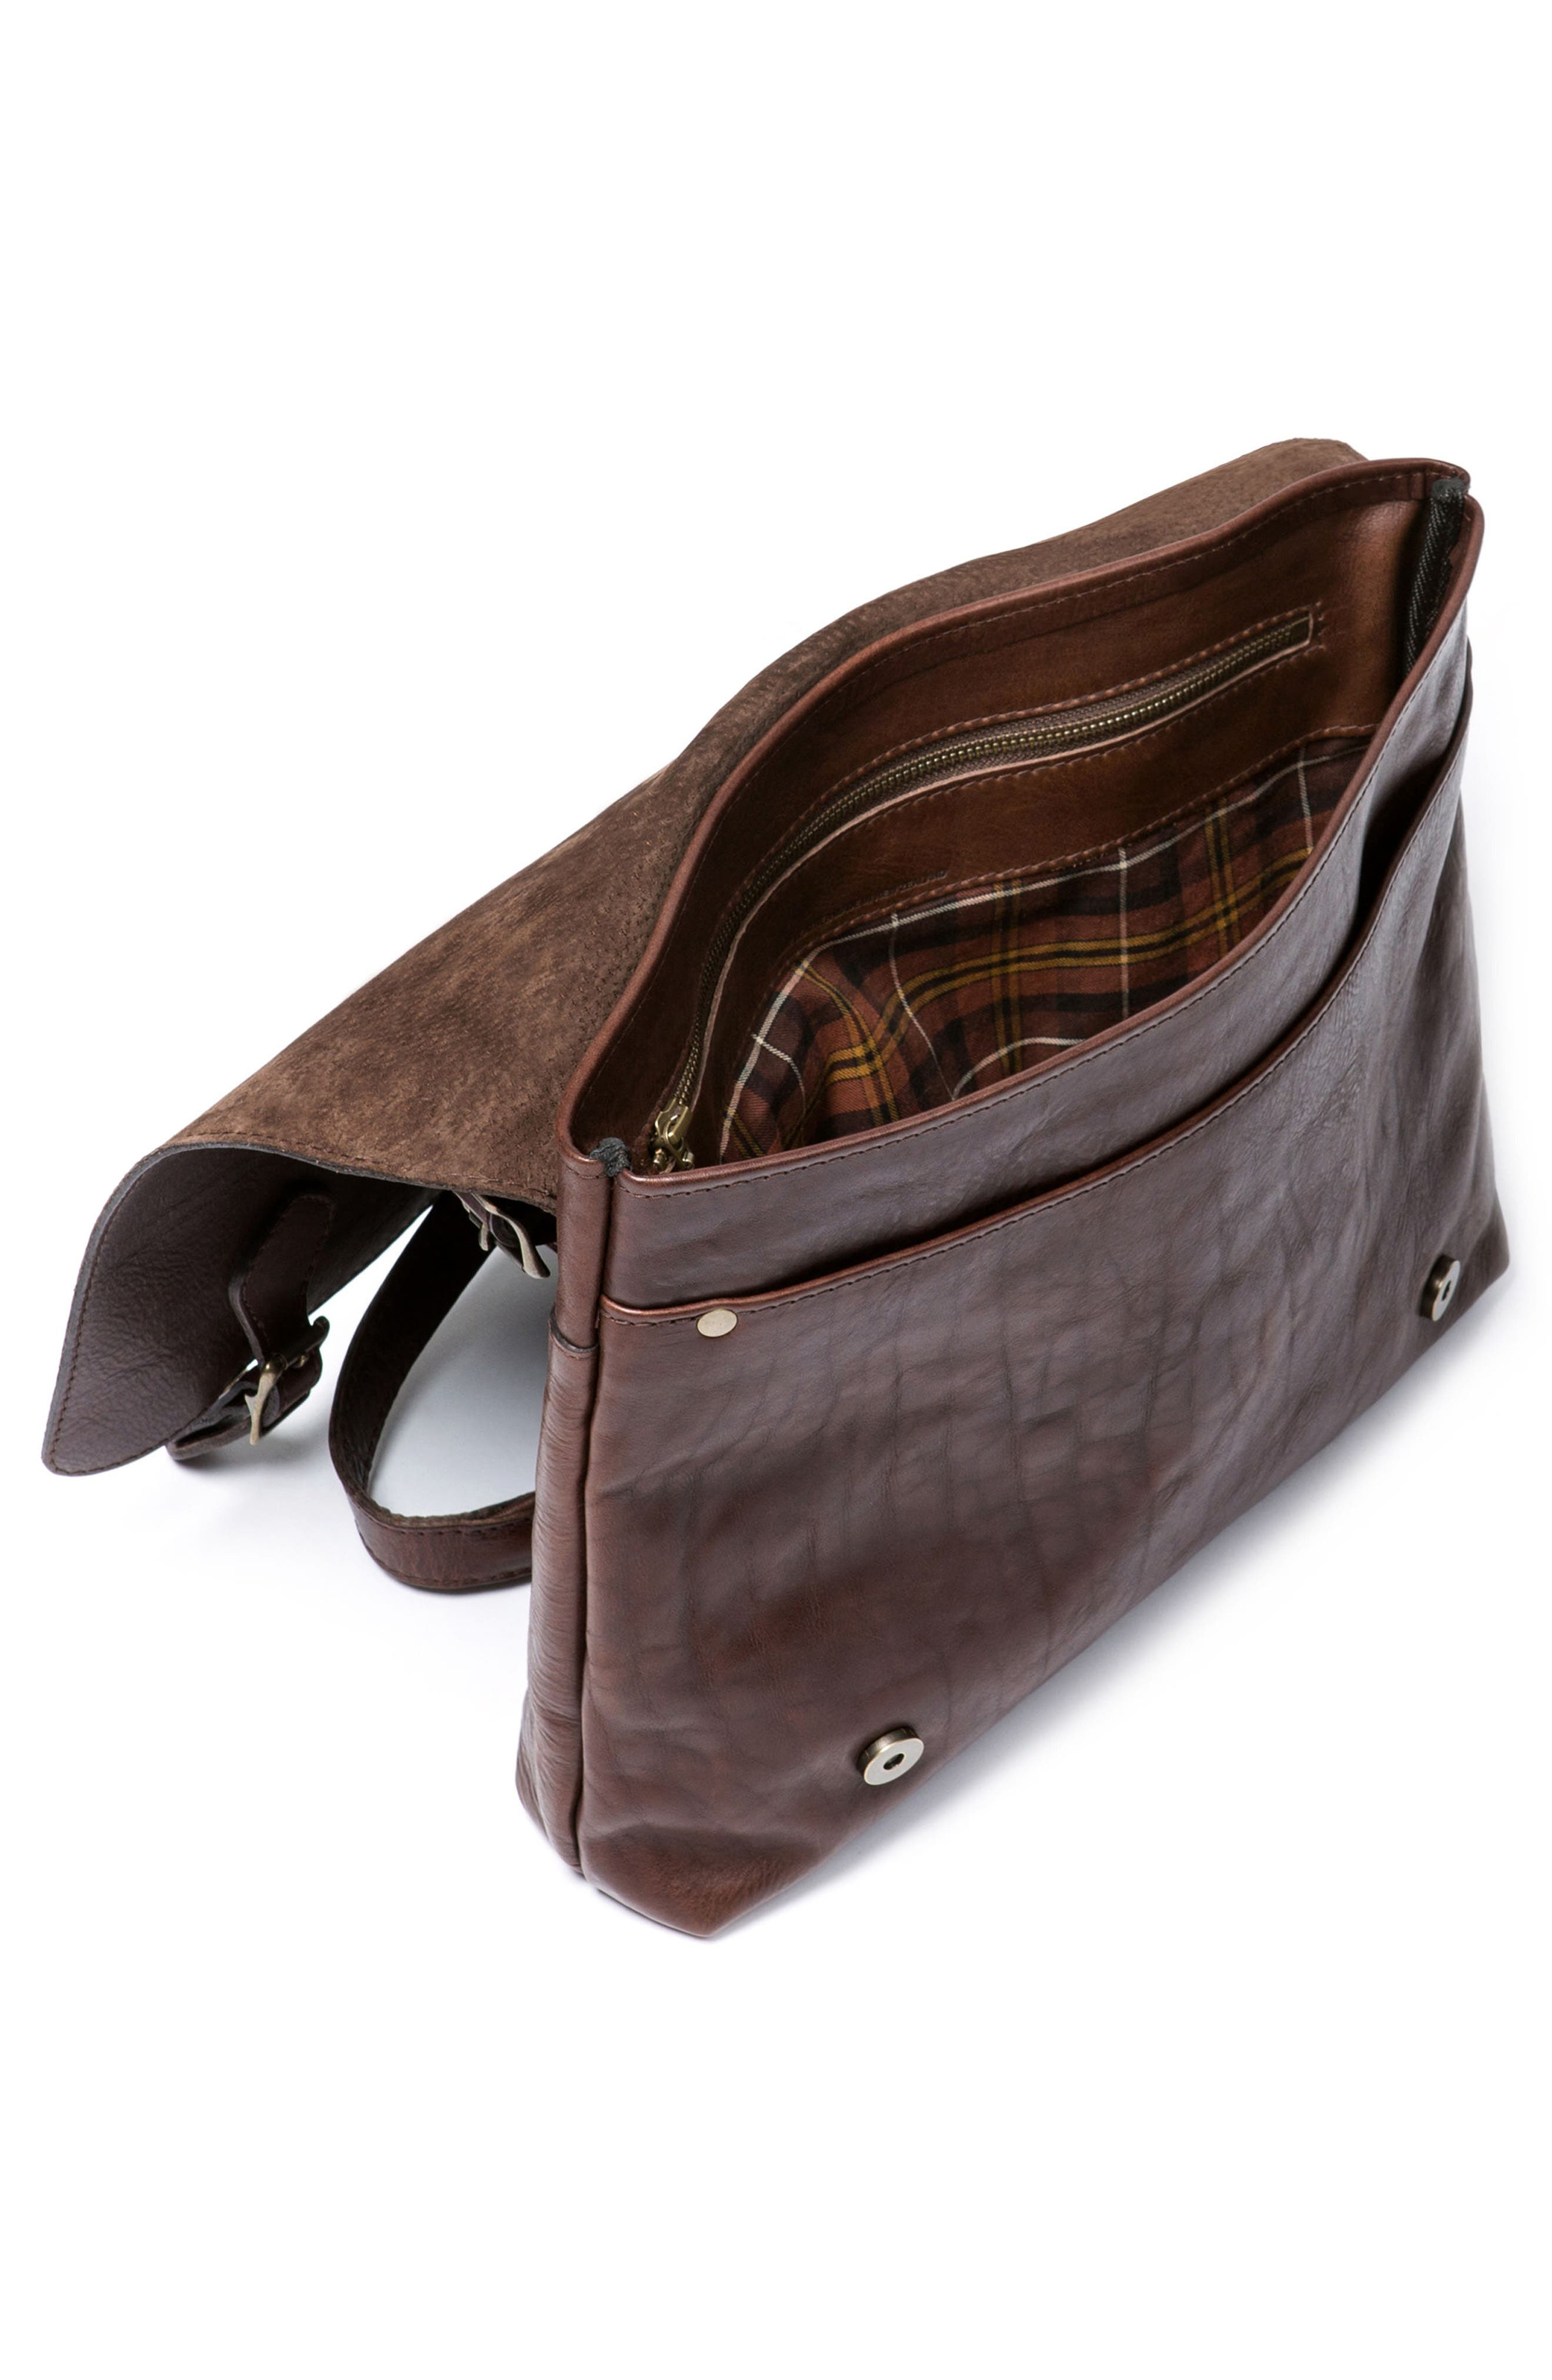 Woodstock Leather Satchel,                             Alternate thumbnail 3, color,                             Cocoa